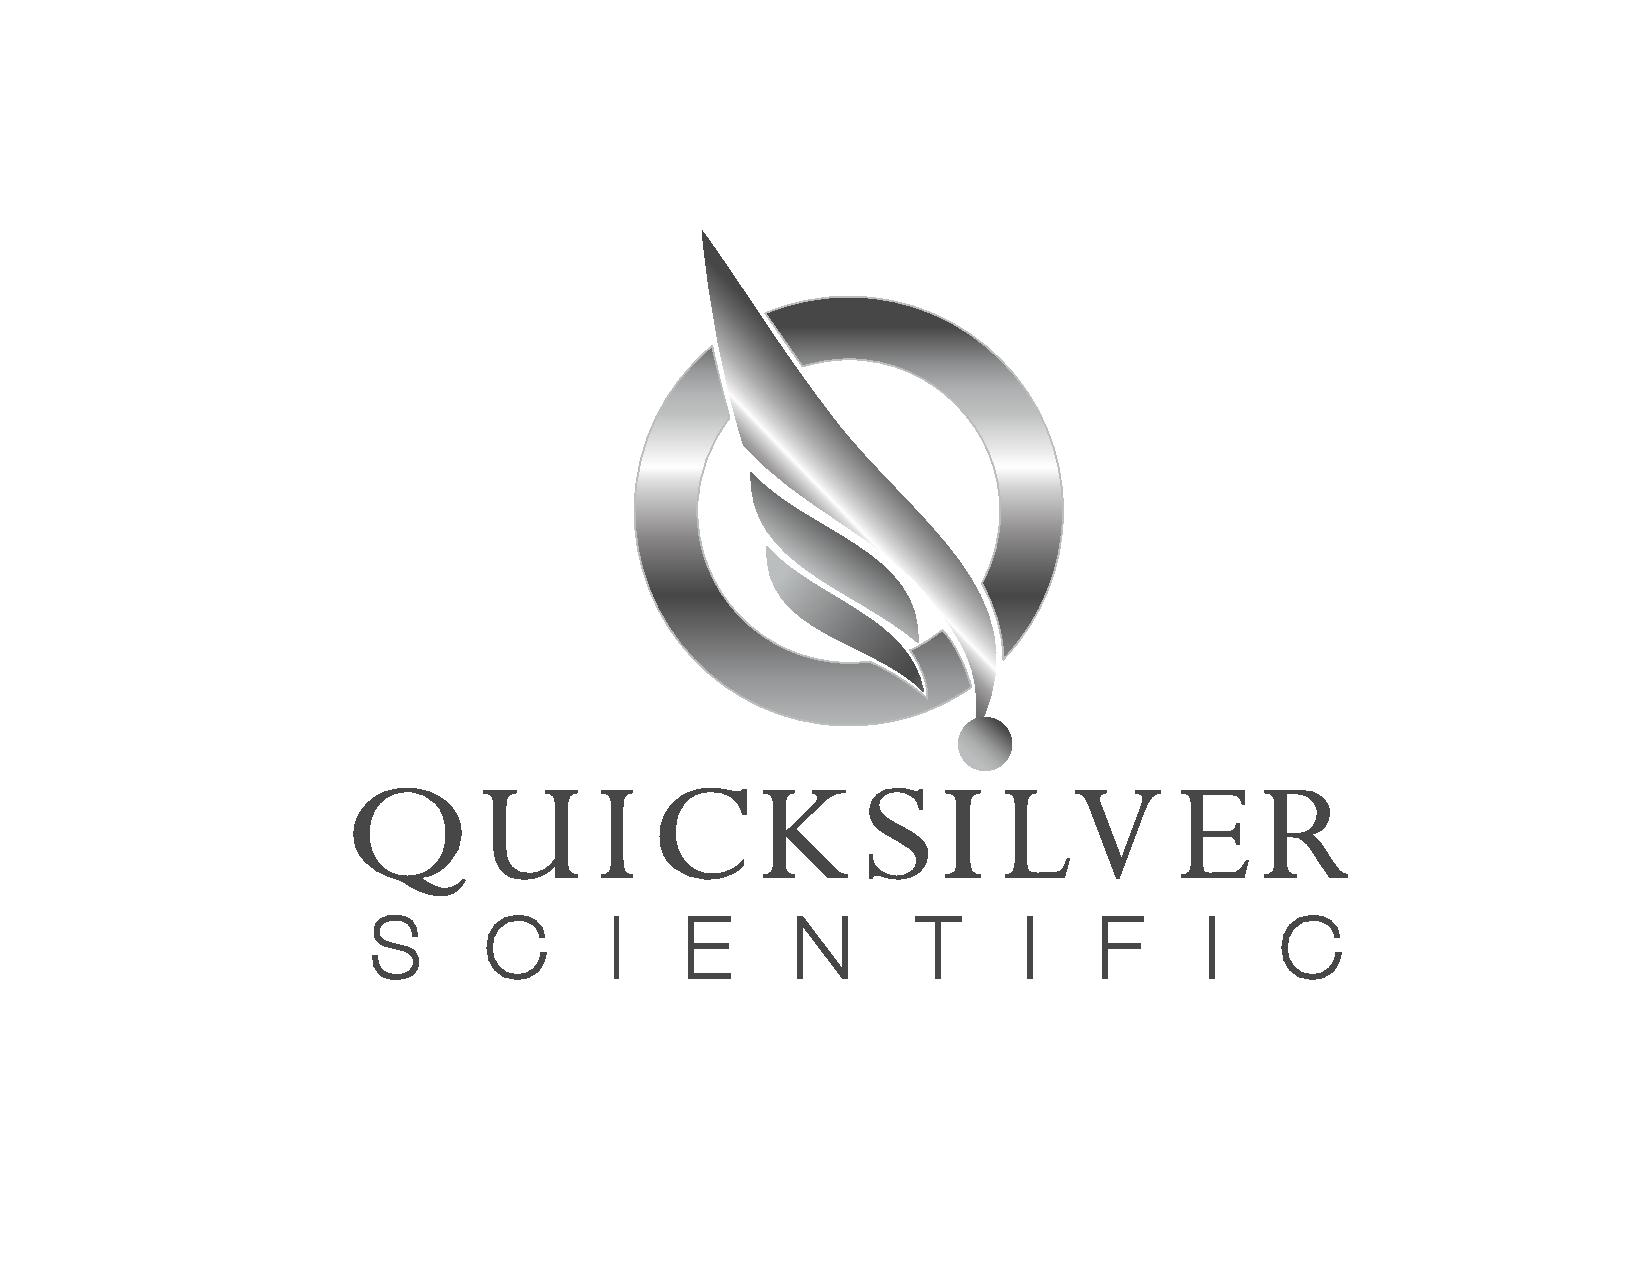 Quicksilver Scientific - Workshop Stage Sponsor